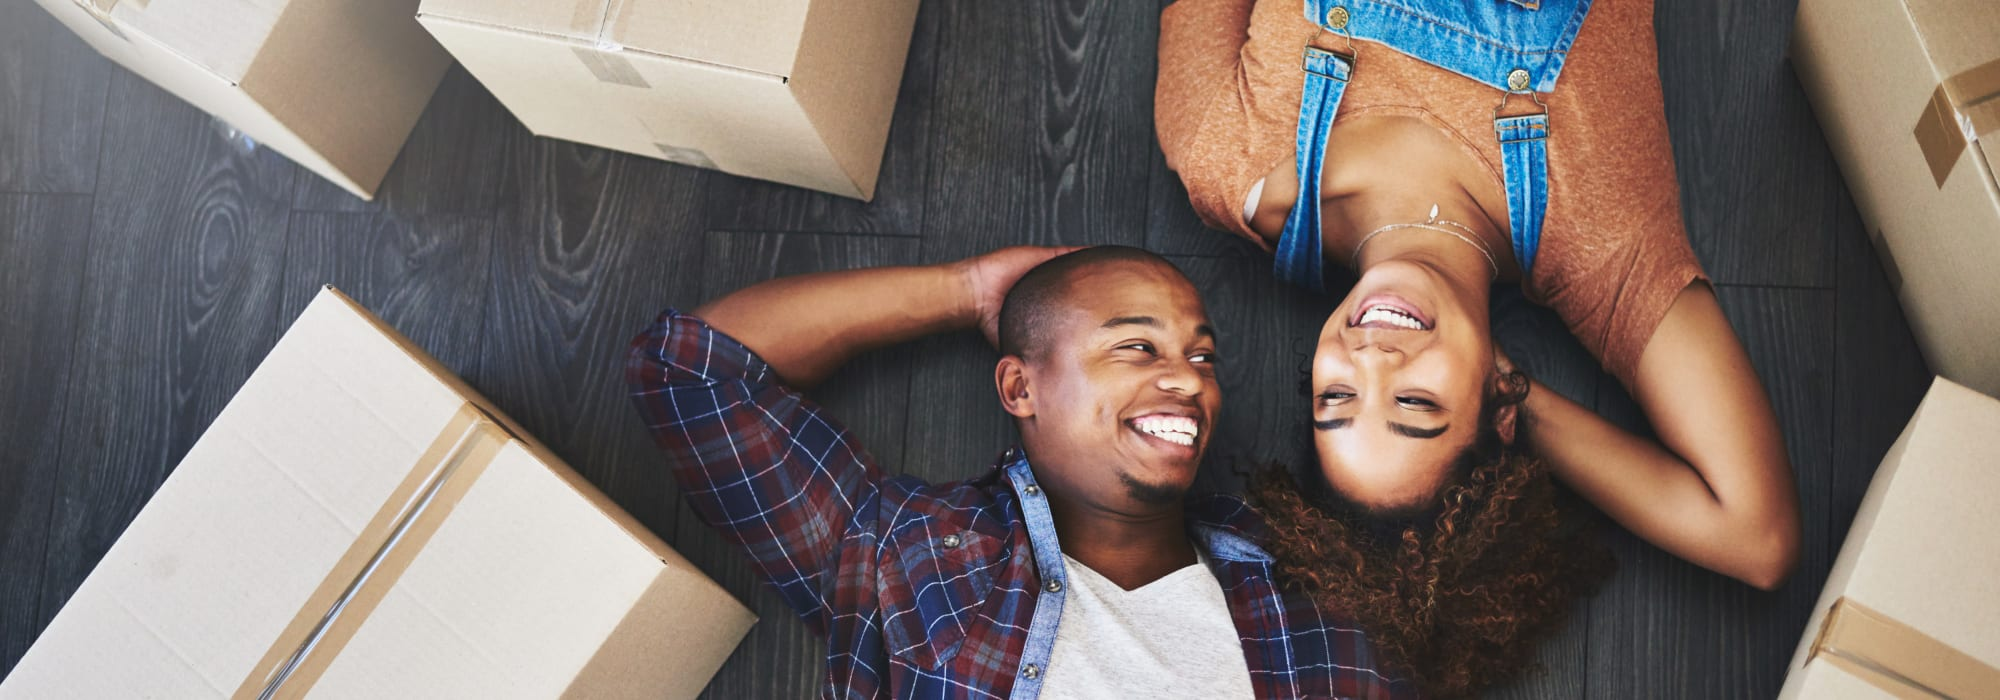 Couple Smiling Amidst Moving Boxes Lockaway Storage in San Antonio, Texas